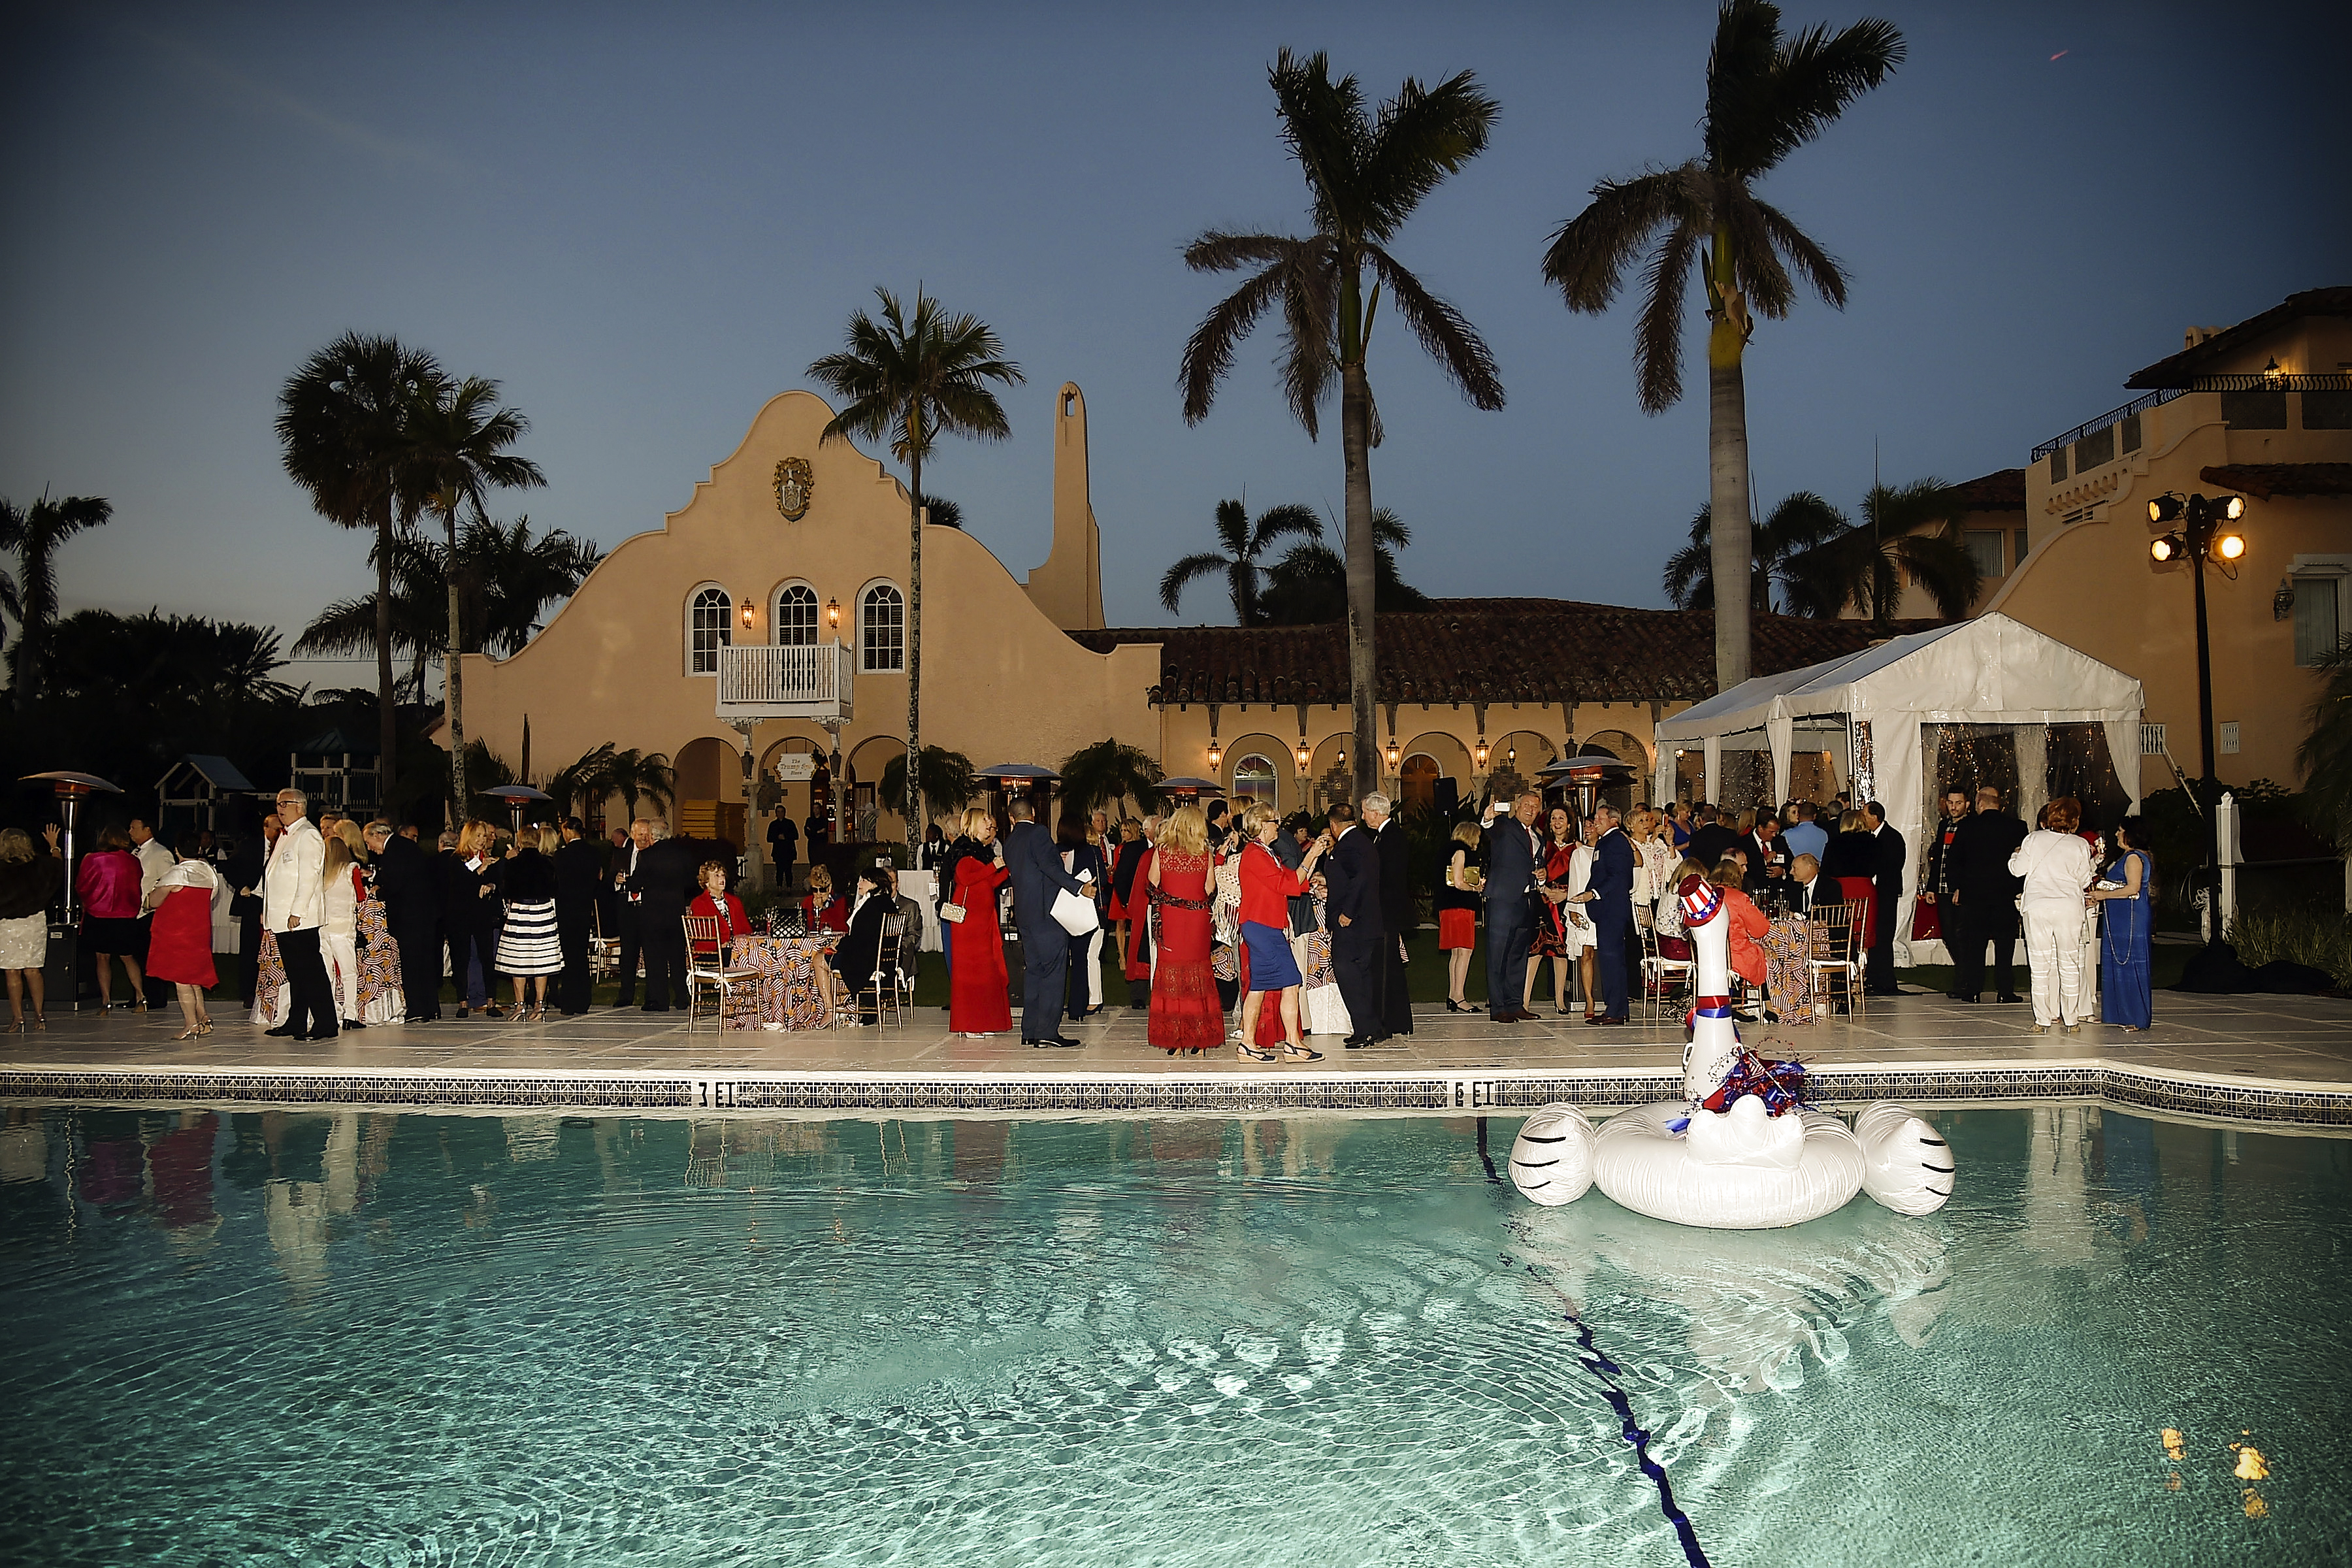 Guests around the pool at President Trump's one year anniversary with over 800 guests at the winter White House at Mar-a-Lago on January 18, 2018 in Palm Beach, Florida.  (Photo by Patrick McMullan/Patrick McMullan via Getty Images)